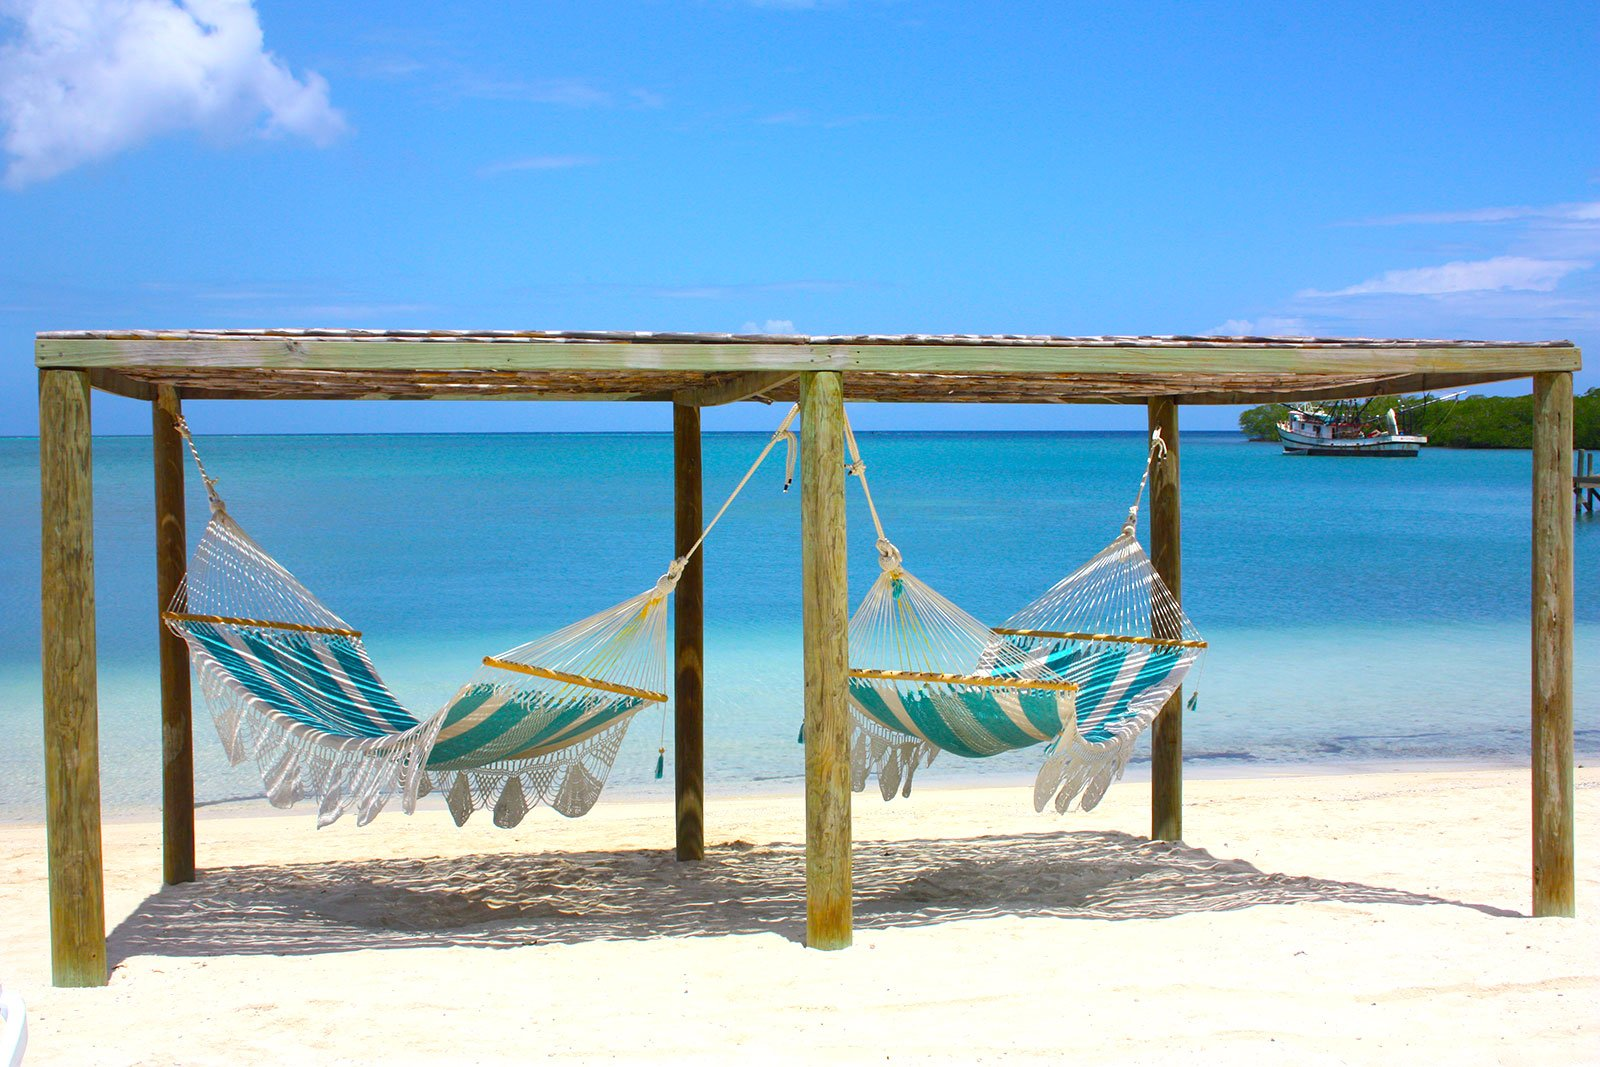 Image of Beach Hammocks in Roatan